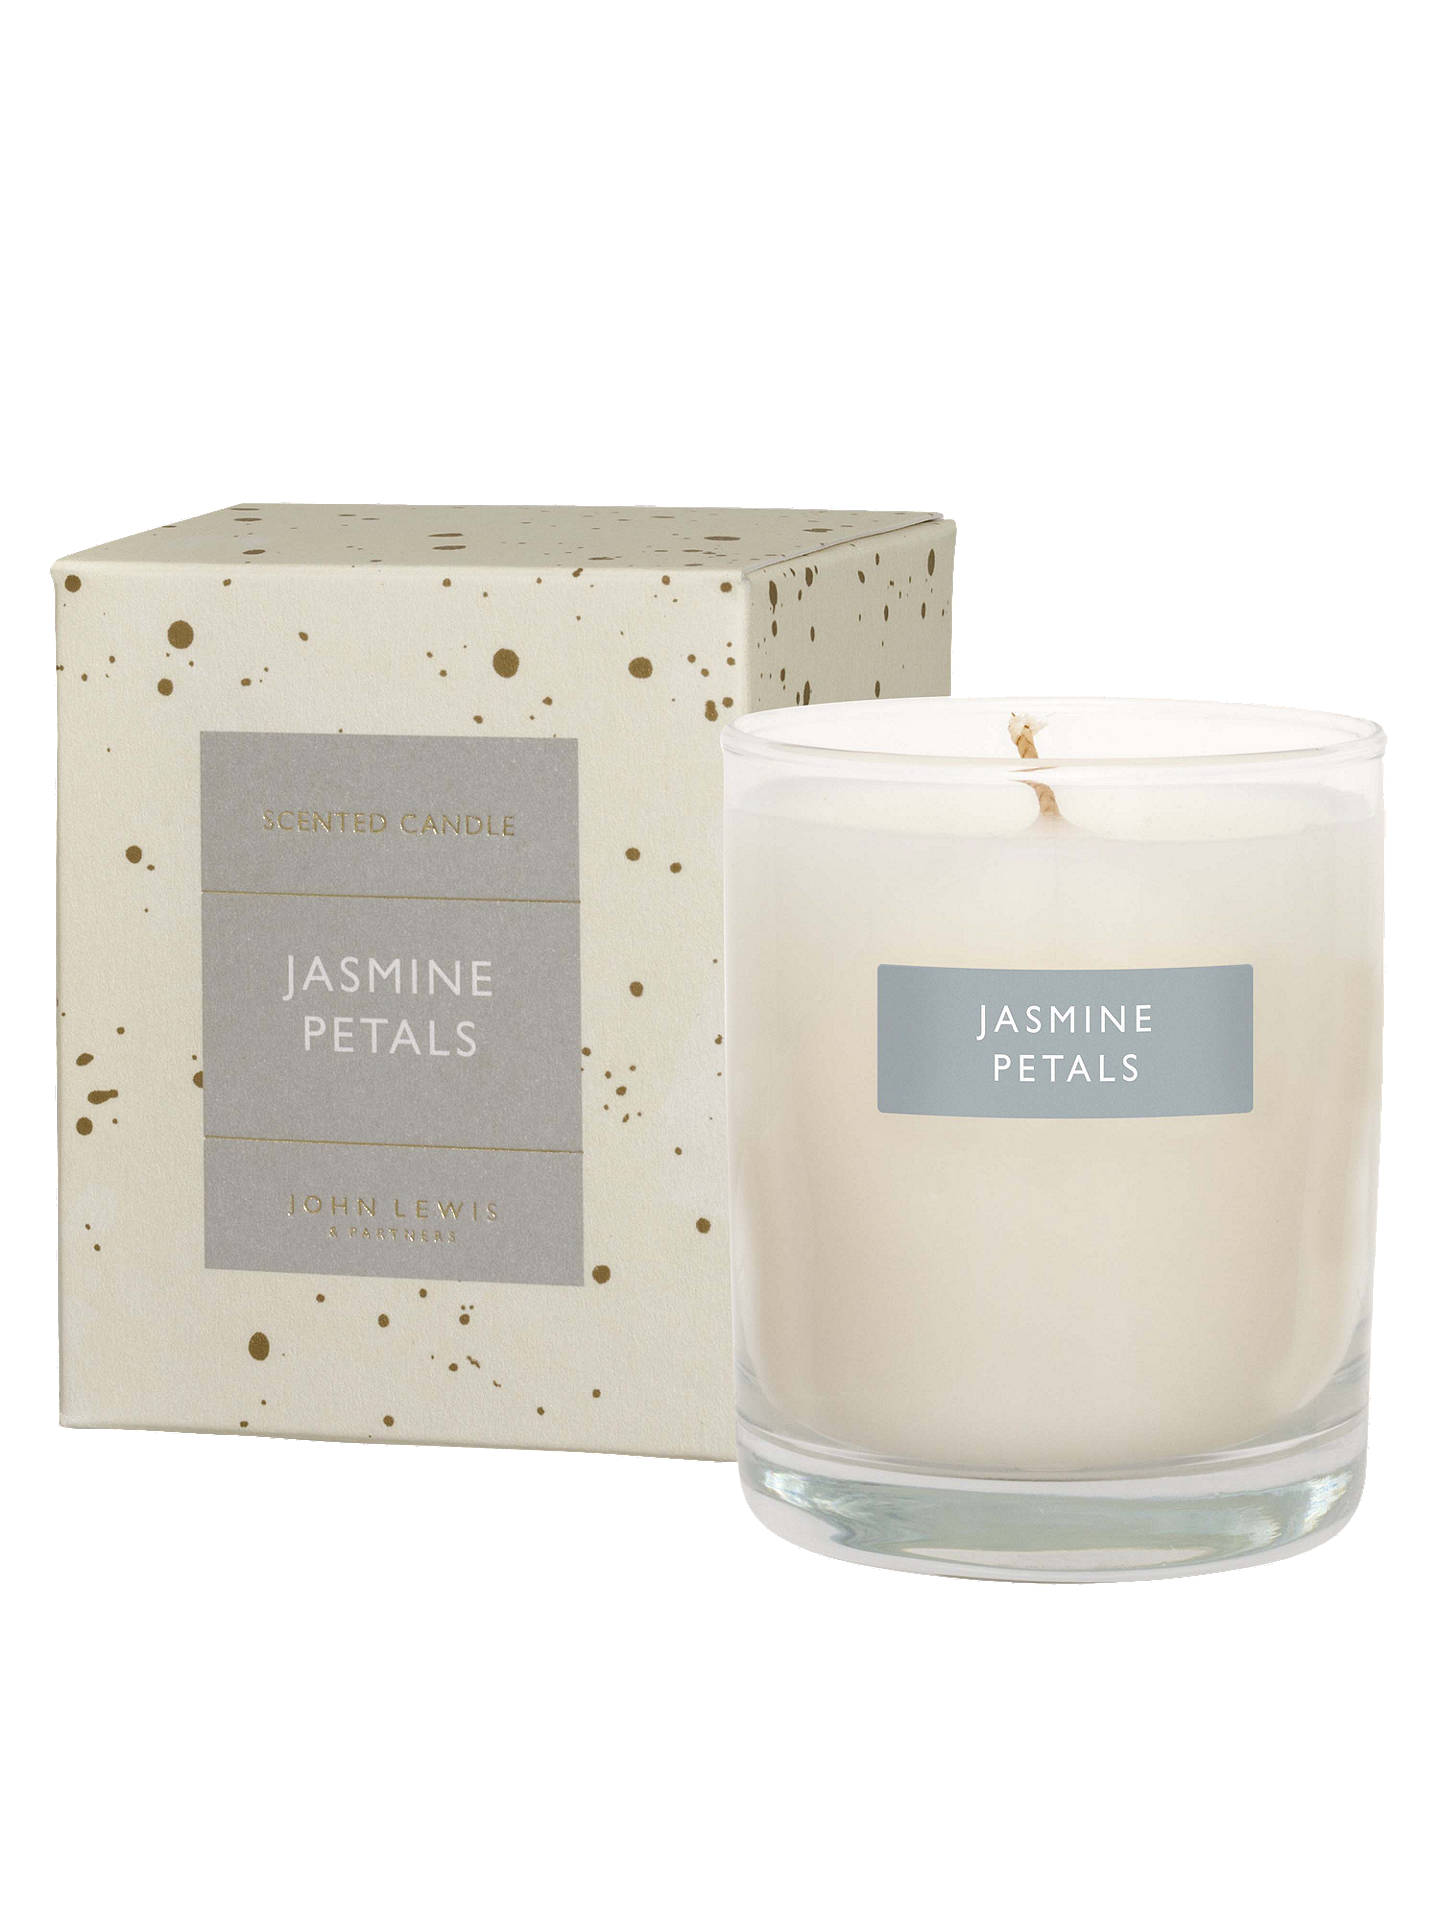 BuyJohn Lewis & Partners Jasmine Petals Scented Candle, 180g Online at johnlewis.com